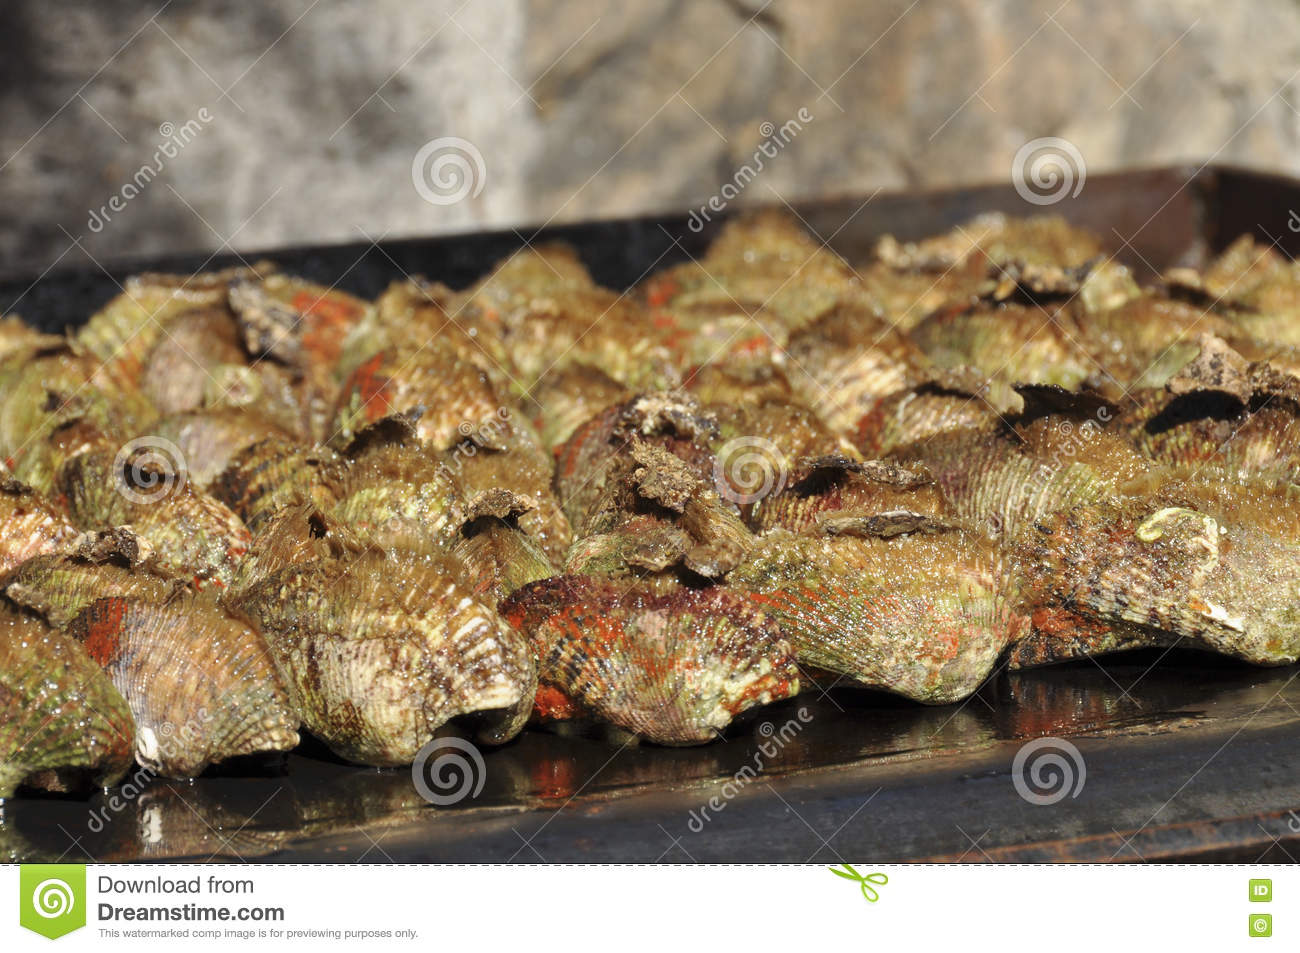 Ark clams on grill stock image  Image of delicious, marine